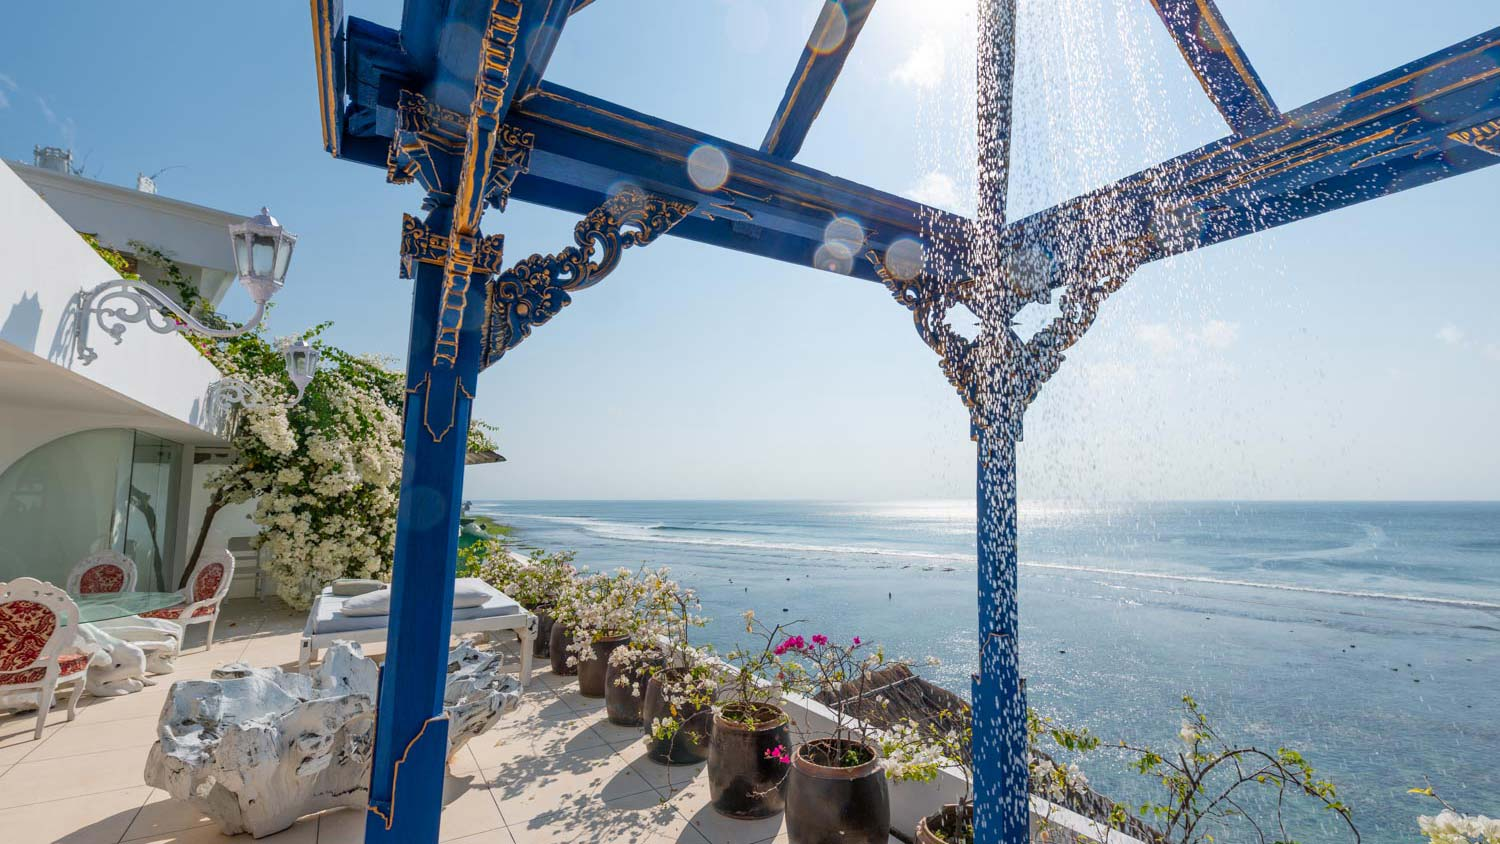 Capri-morabito-art-cliff-outdoor-shower.jpg